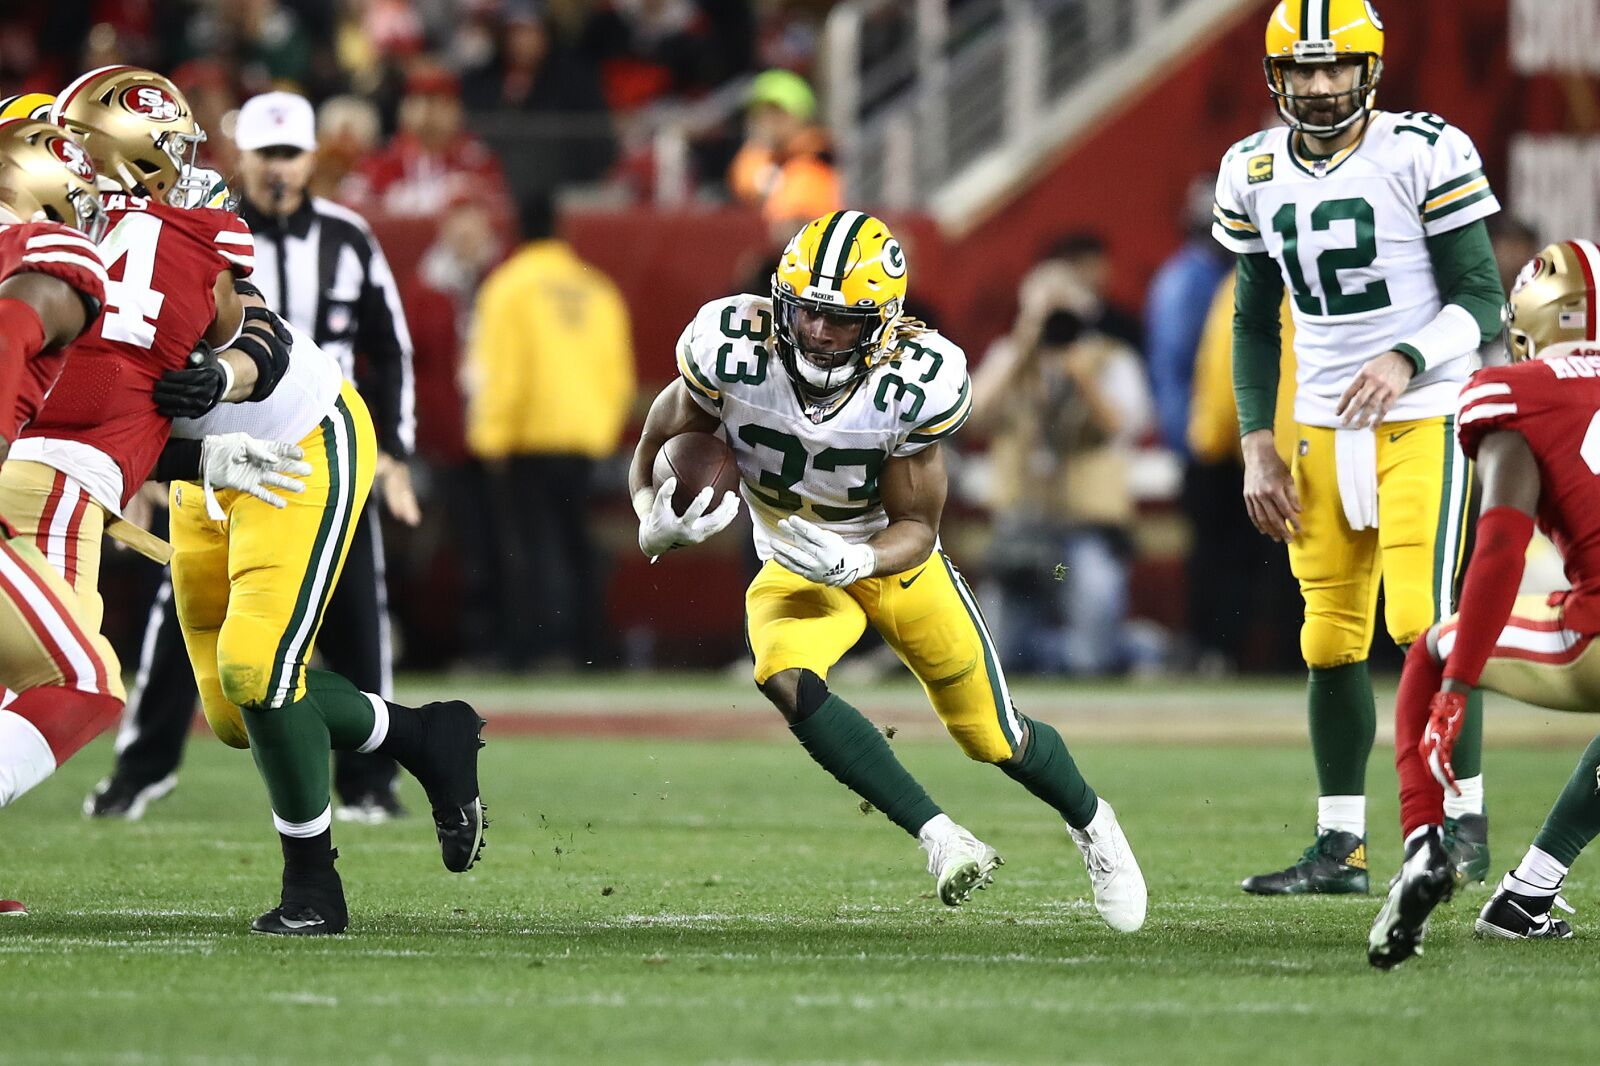 Packers: Top three performers from NFC Championship loss